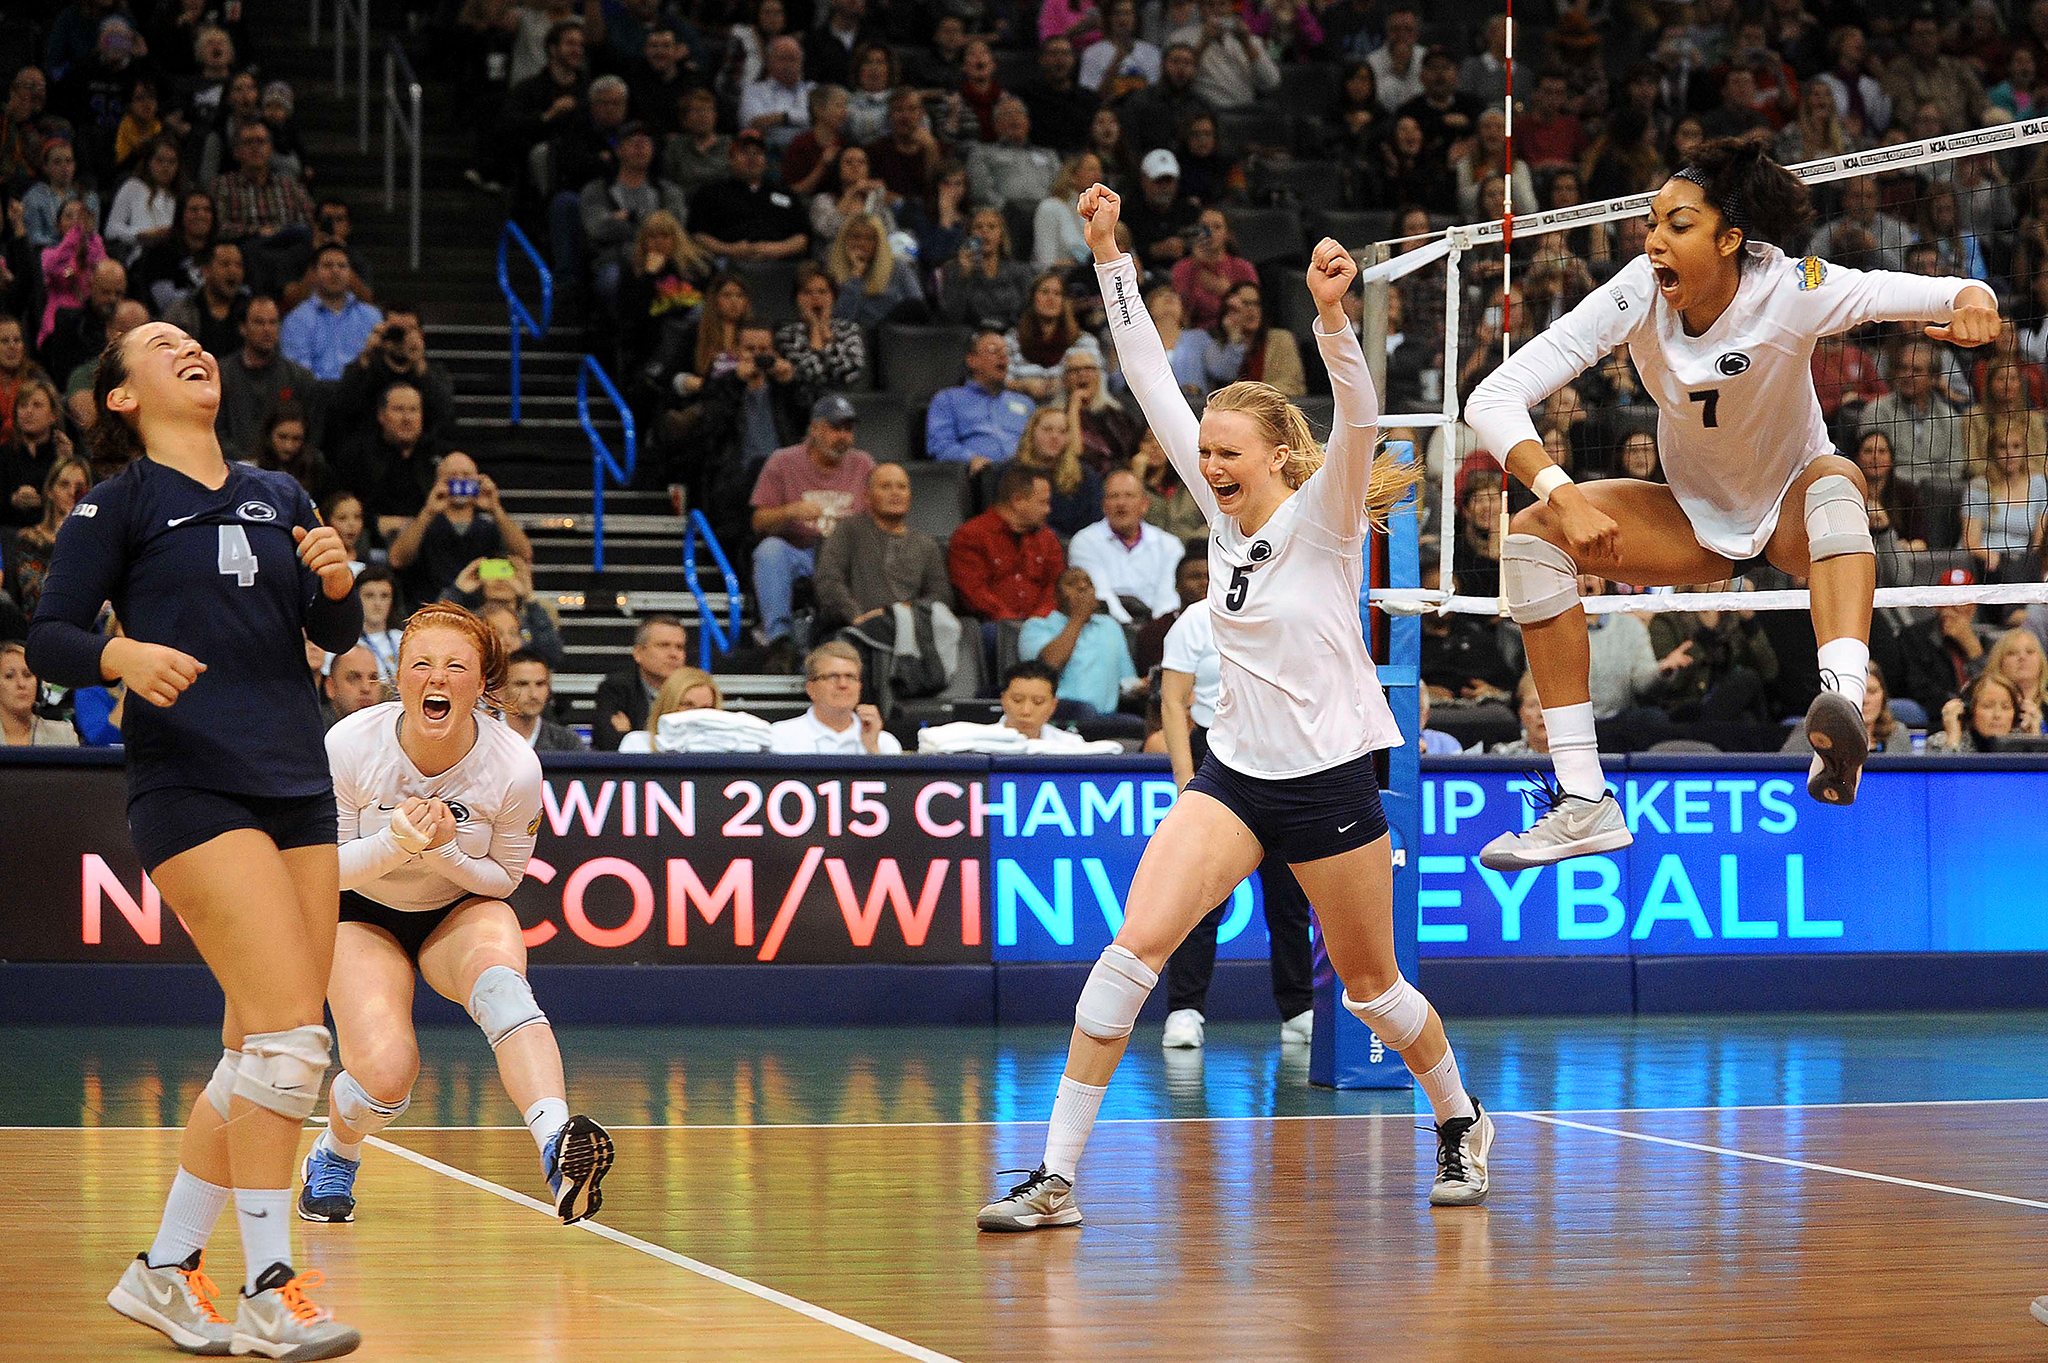 NCAA Volleyball Final: Penn State Reacts